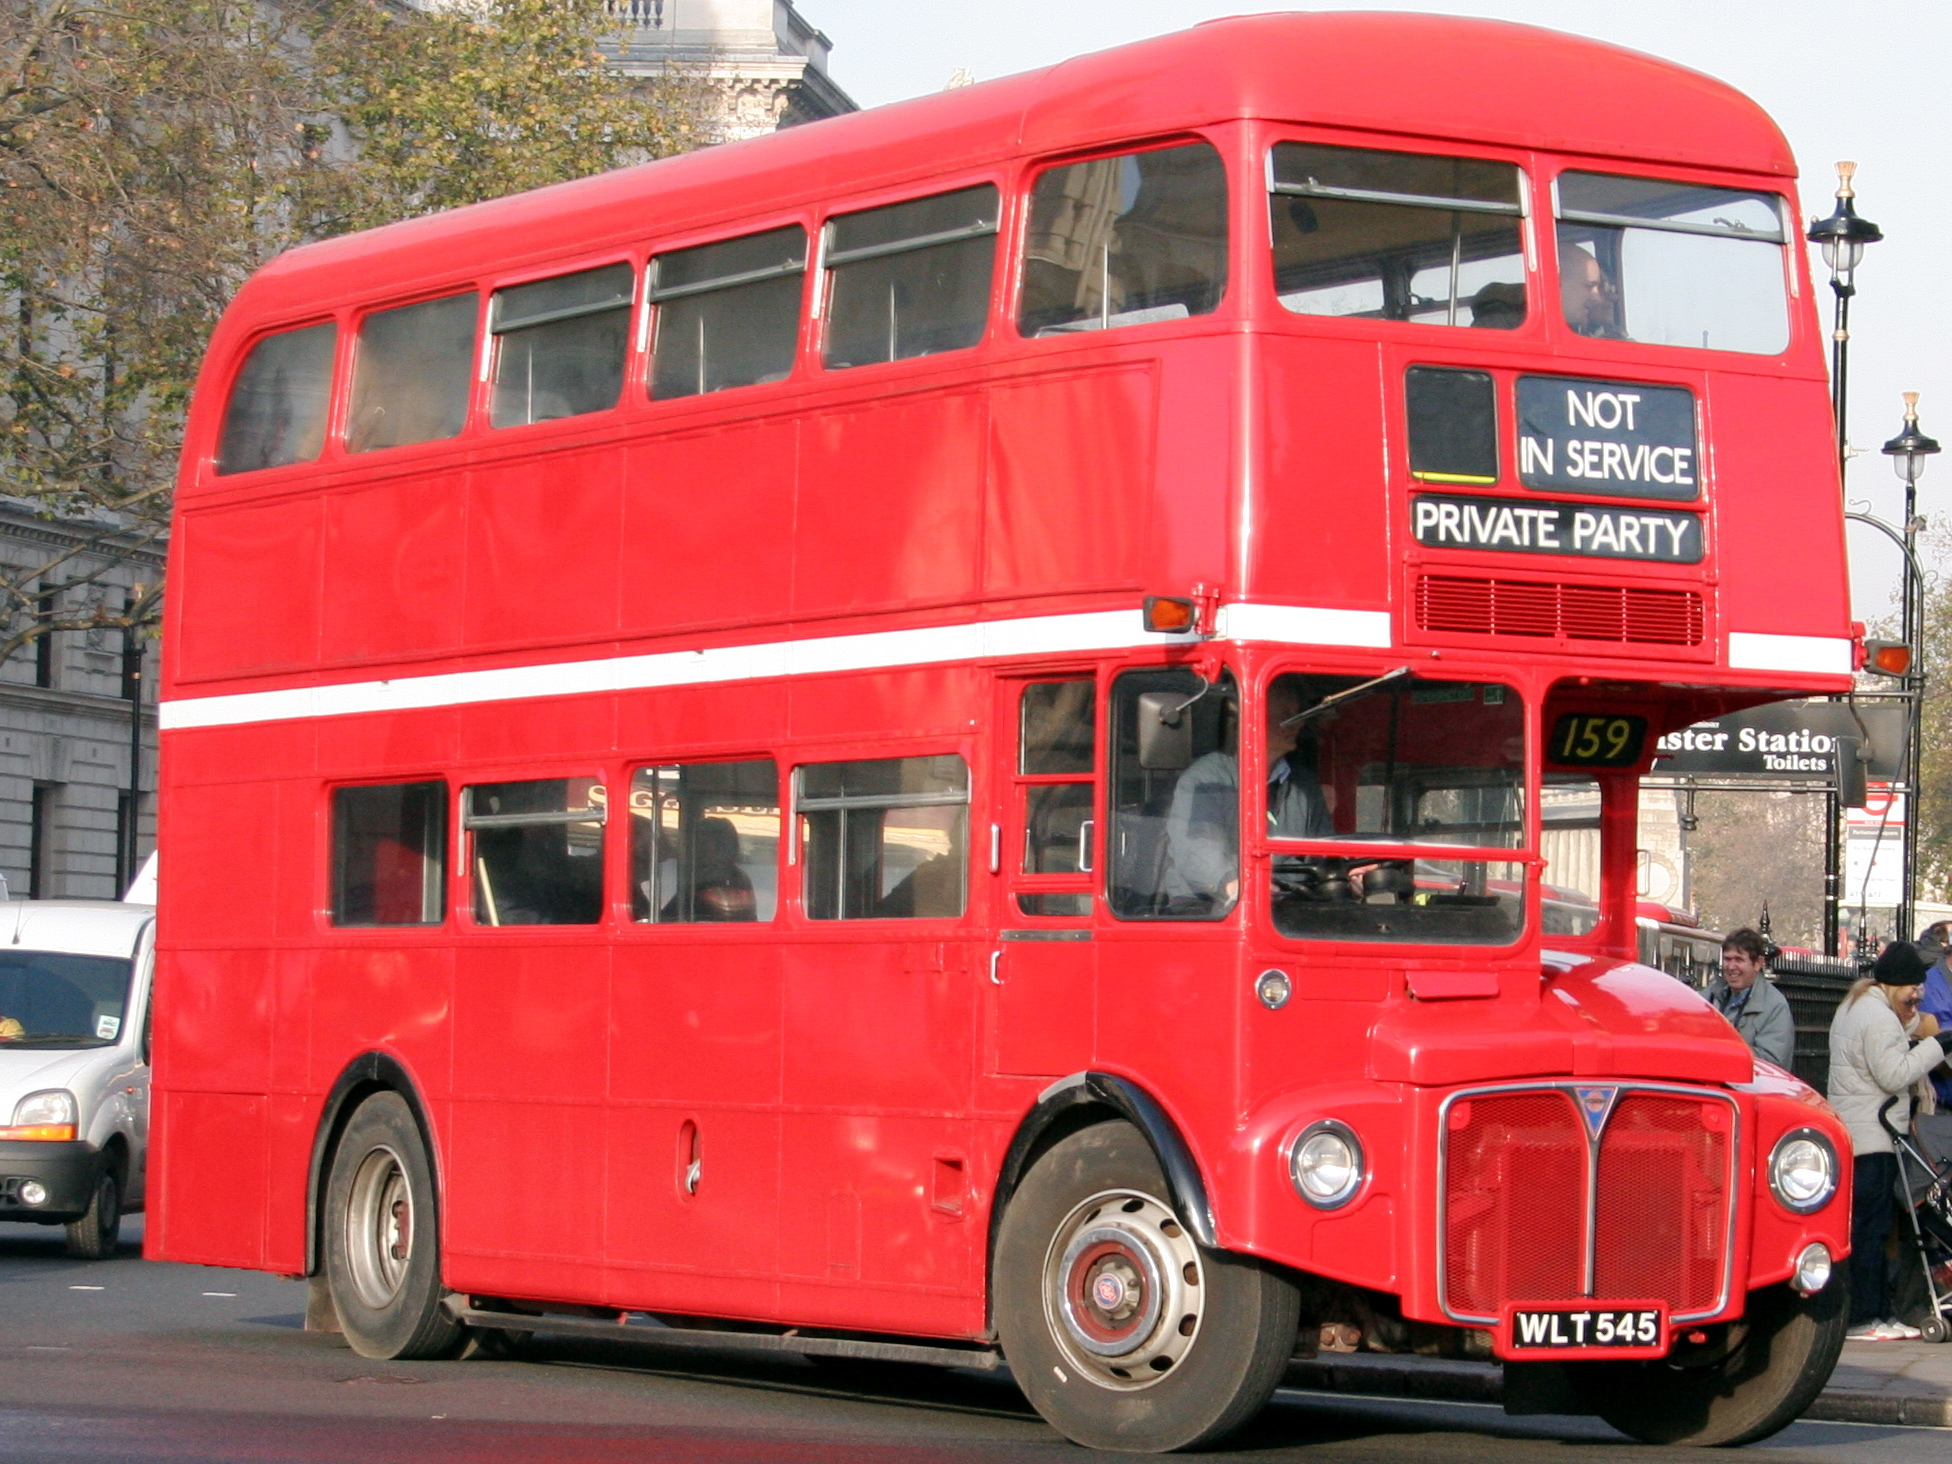 File:Media Bus Company Routemaster bus RM545 (WLT 545), Westminster station,